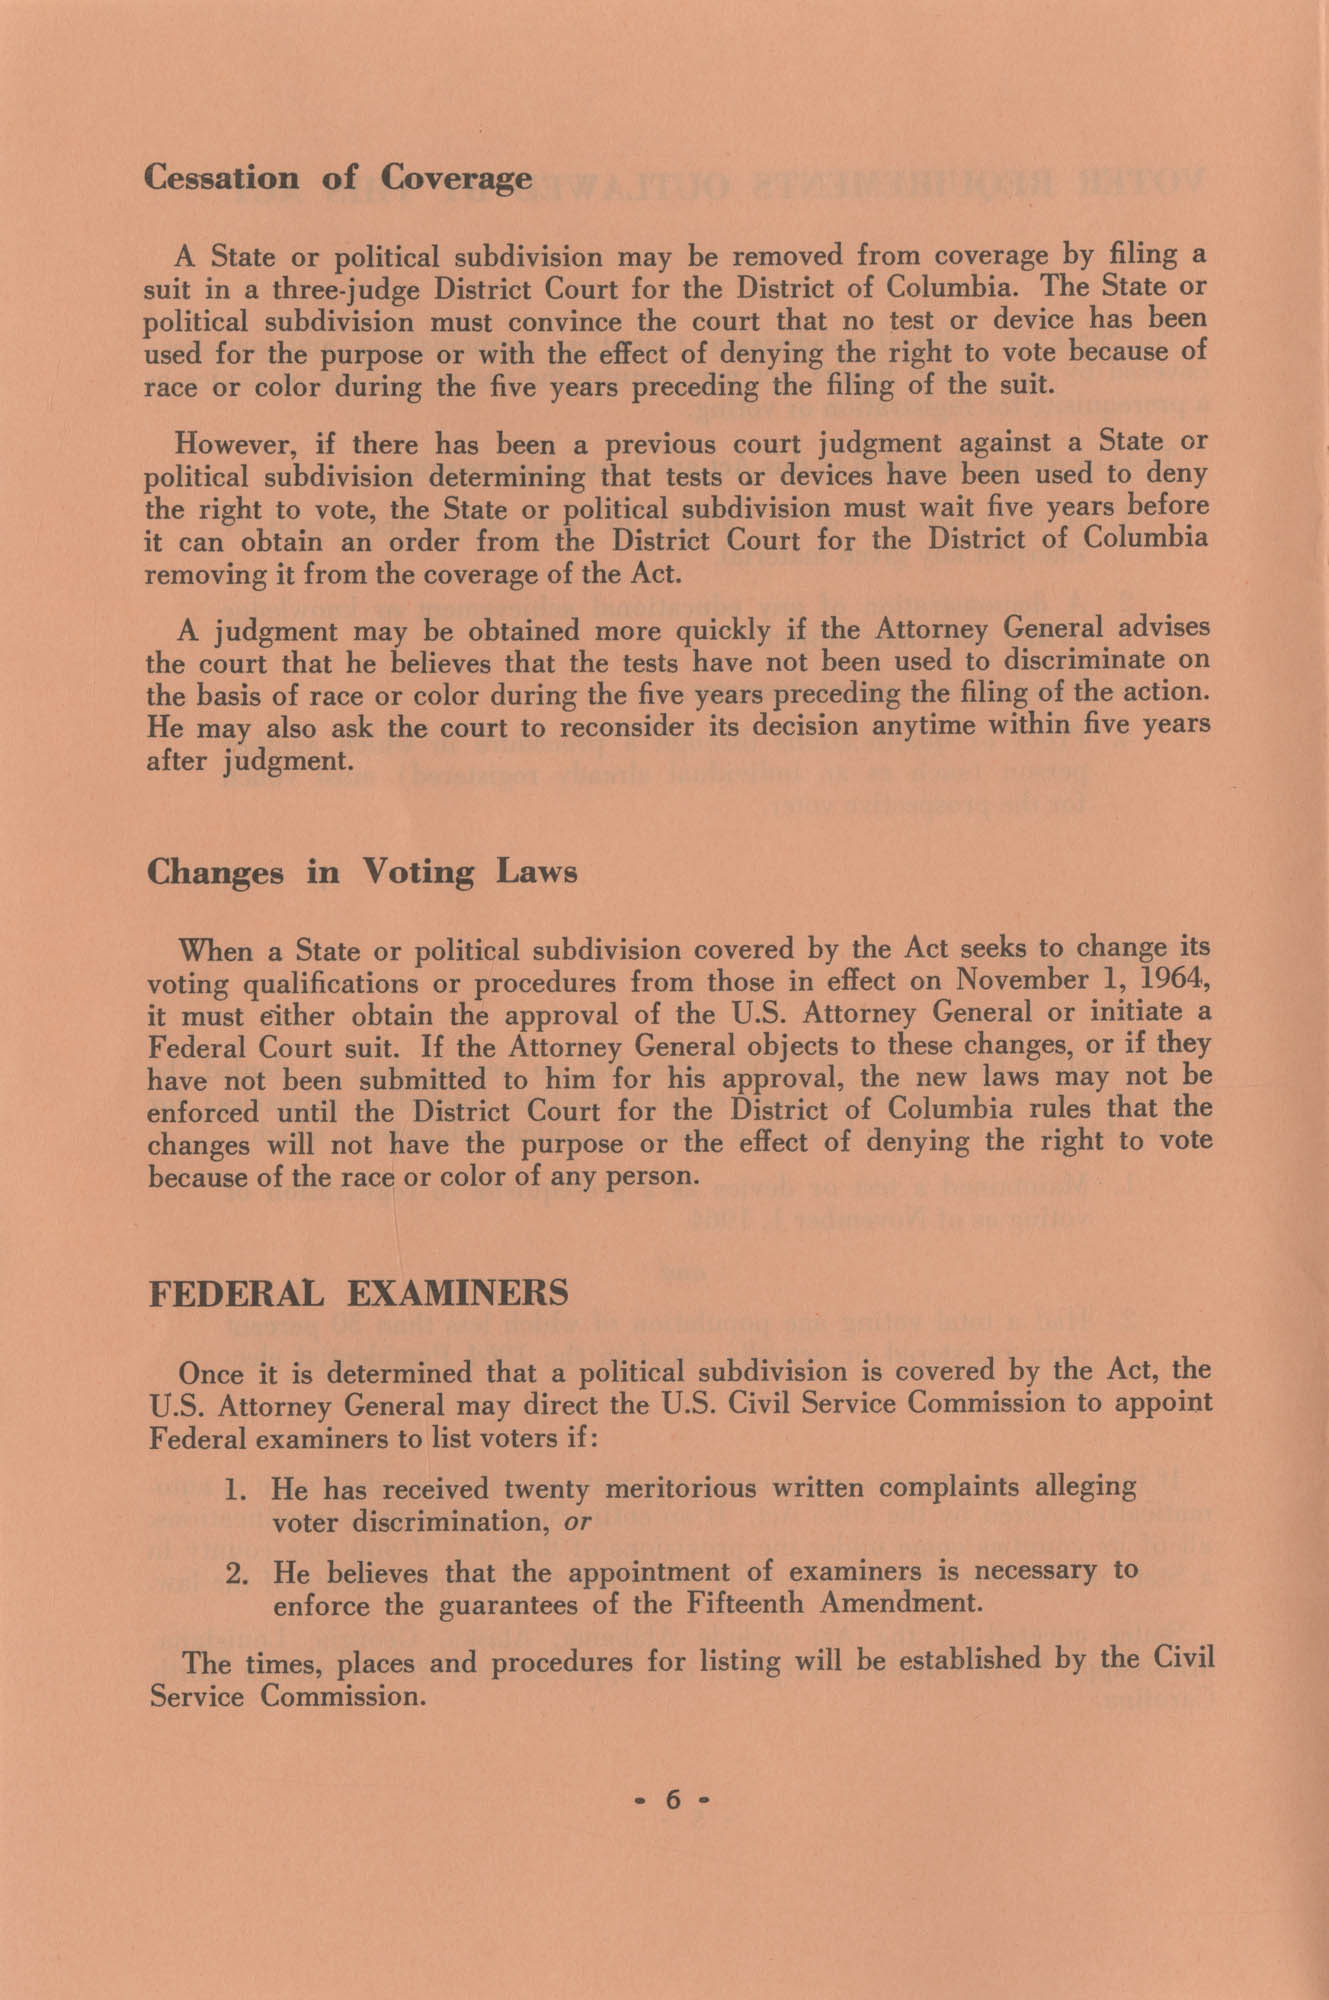 The Voting Rights Act of 1965, Page 6